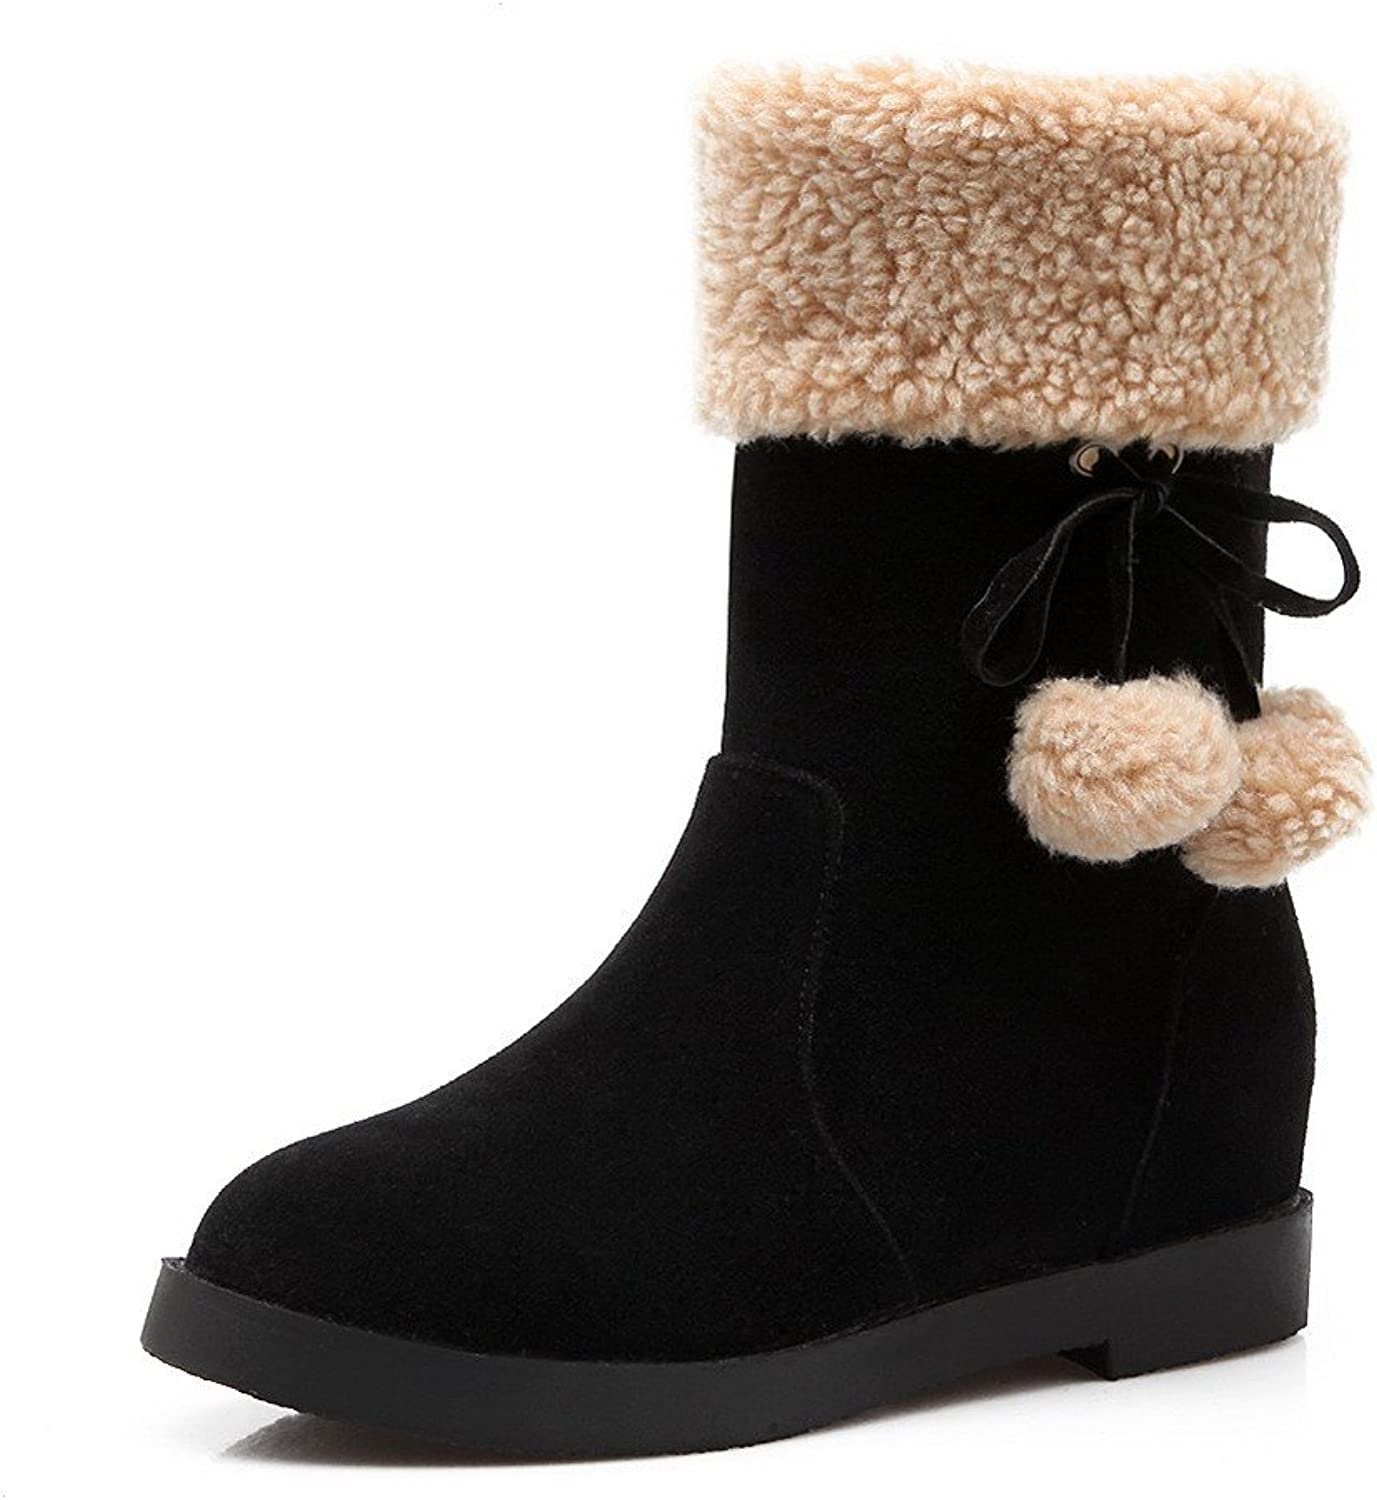 AllhqFashion Women's Kitten-Heels Solid Closed Round Toe Frosted Pull-On Boots